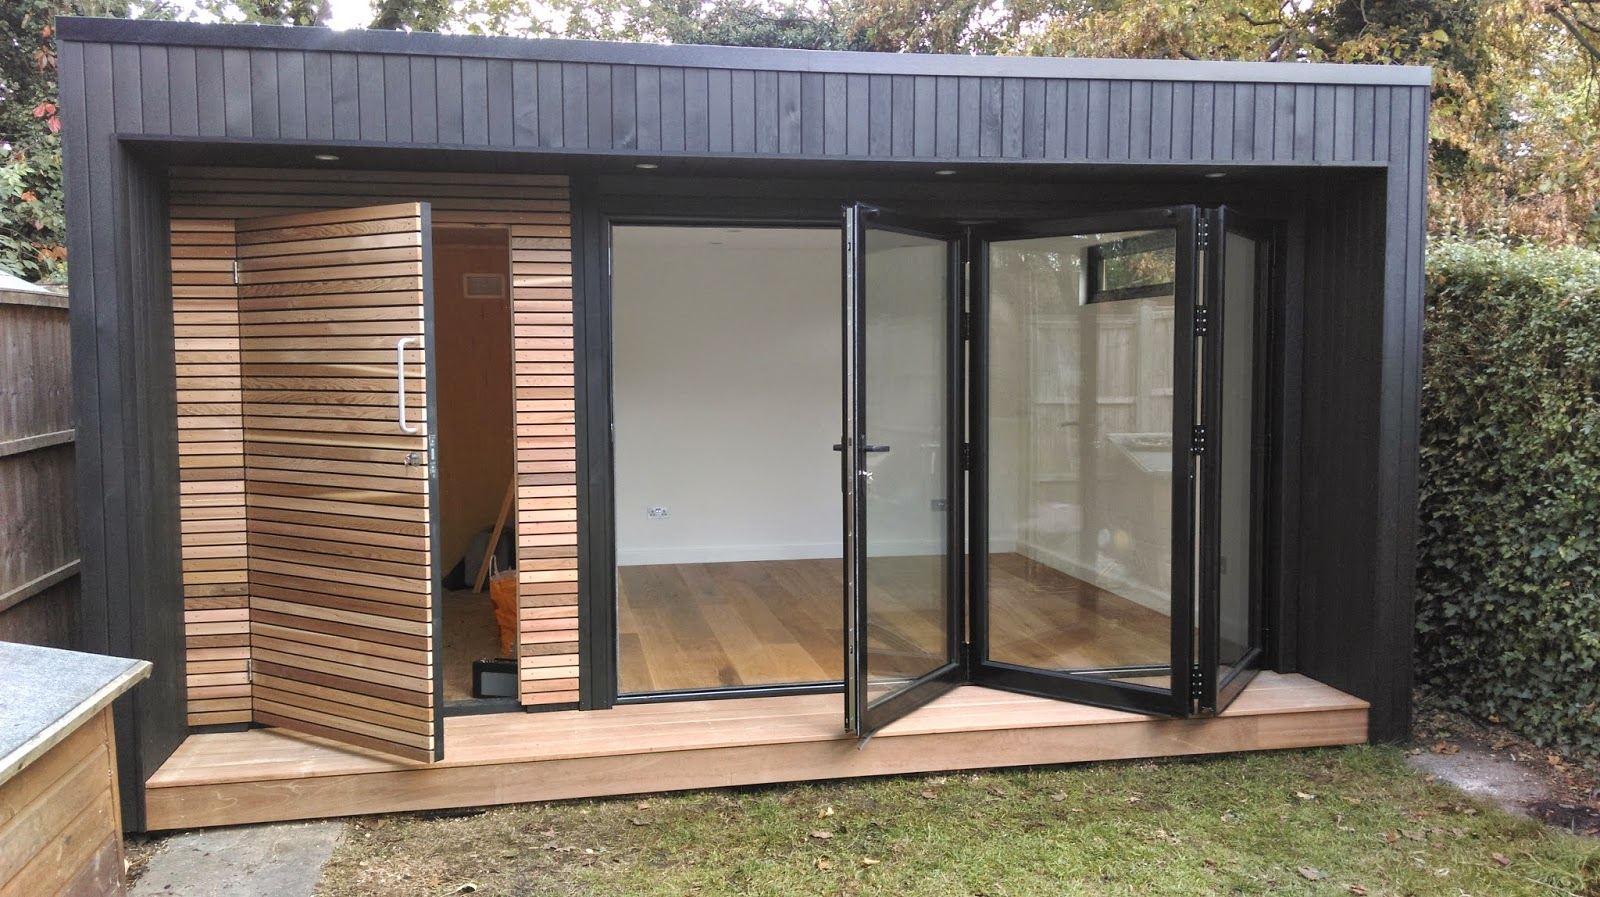 Design the perfect garden offices in your garden for Garden office ideas uk